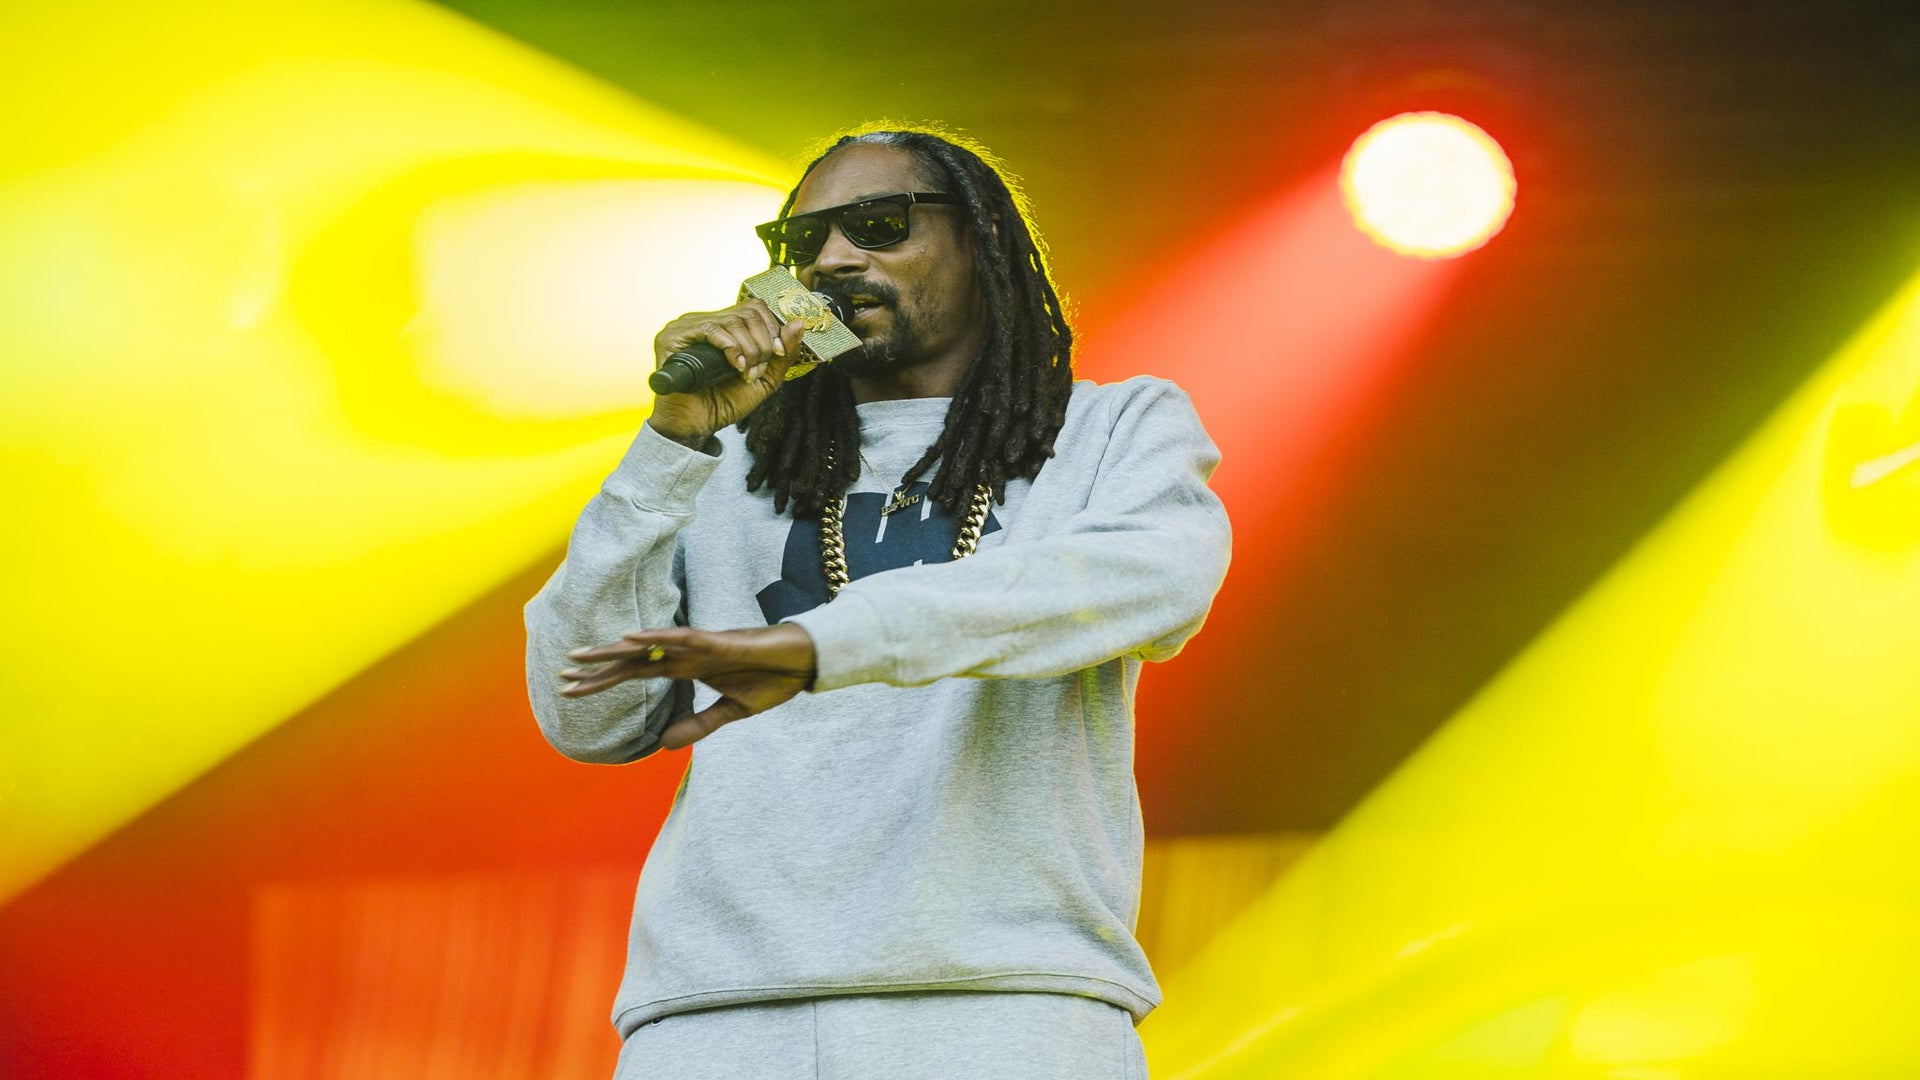 Snoop Dogg Has Harsh Words For Trump Supporters, Especially Kanye West